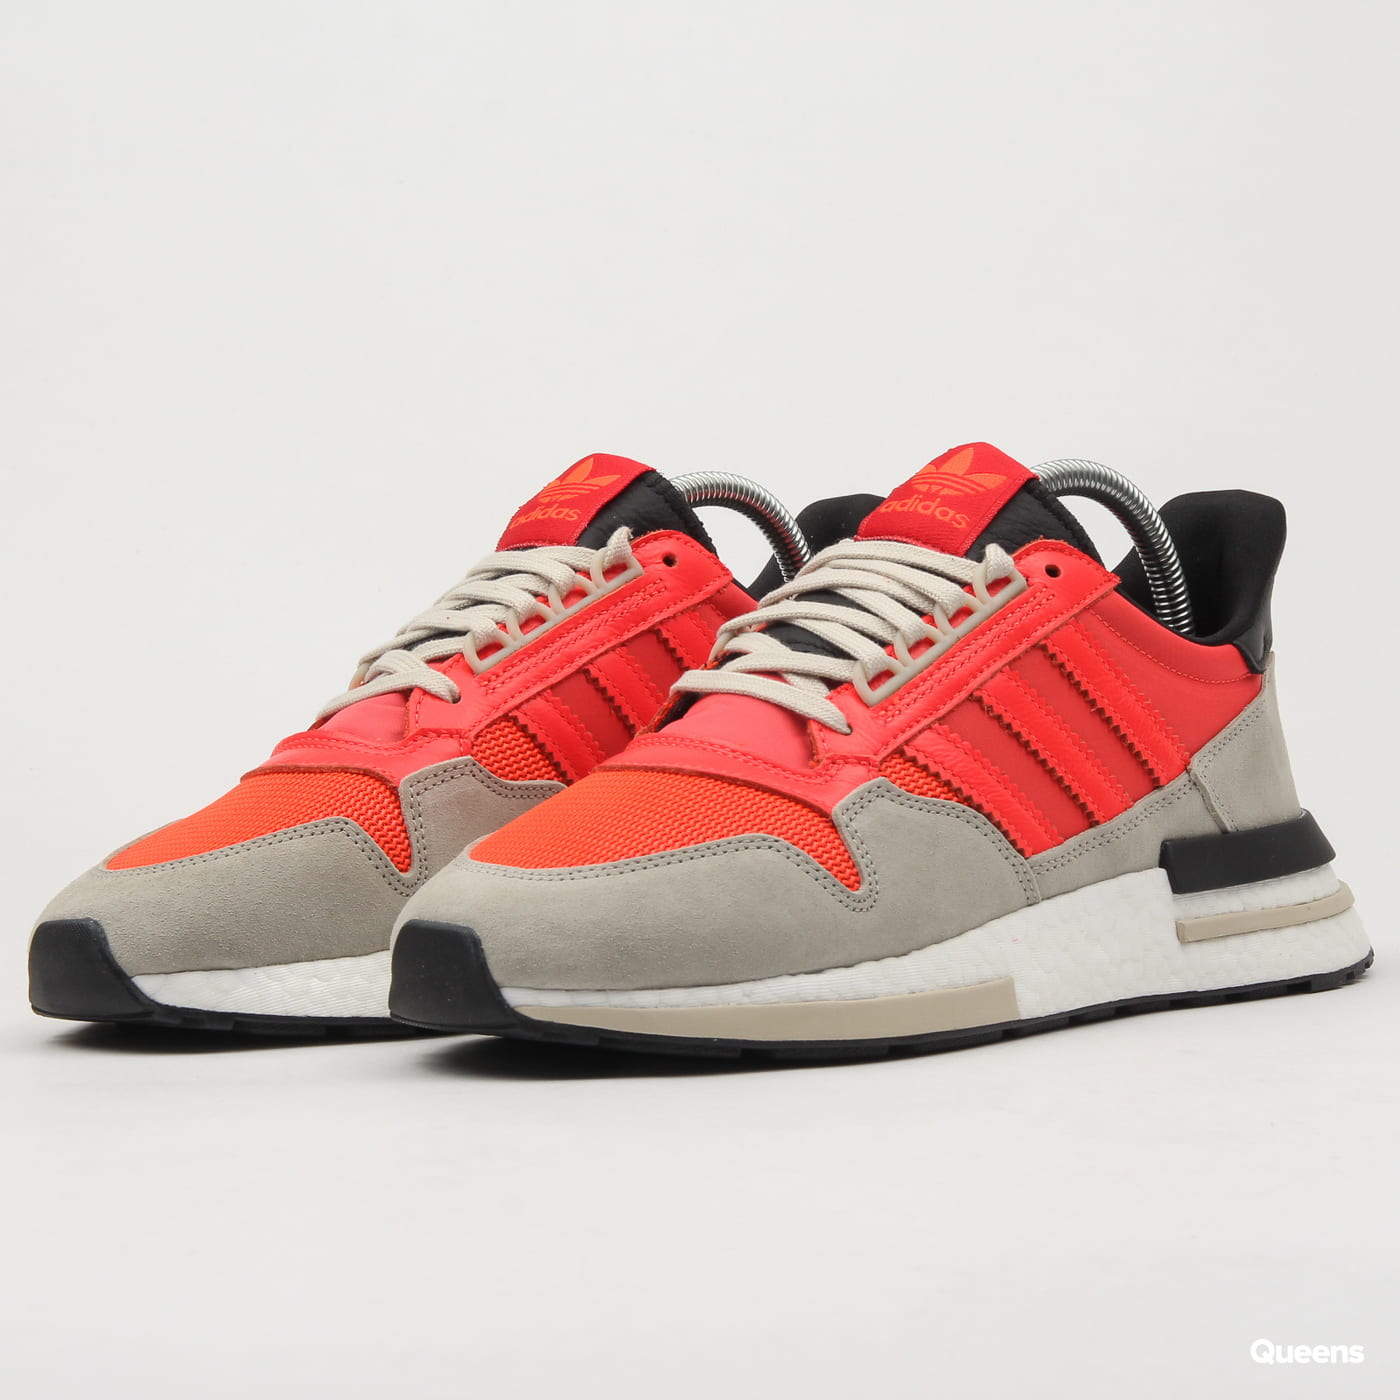 competitive price 7998b 159e0 adidas Originals ZX 500 RM solar red / cblack / ftwwht